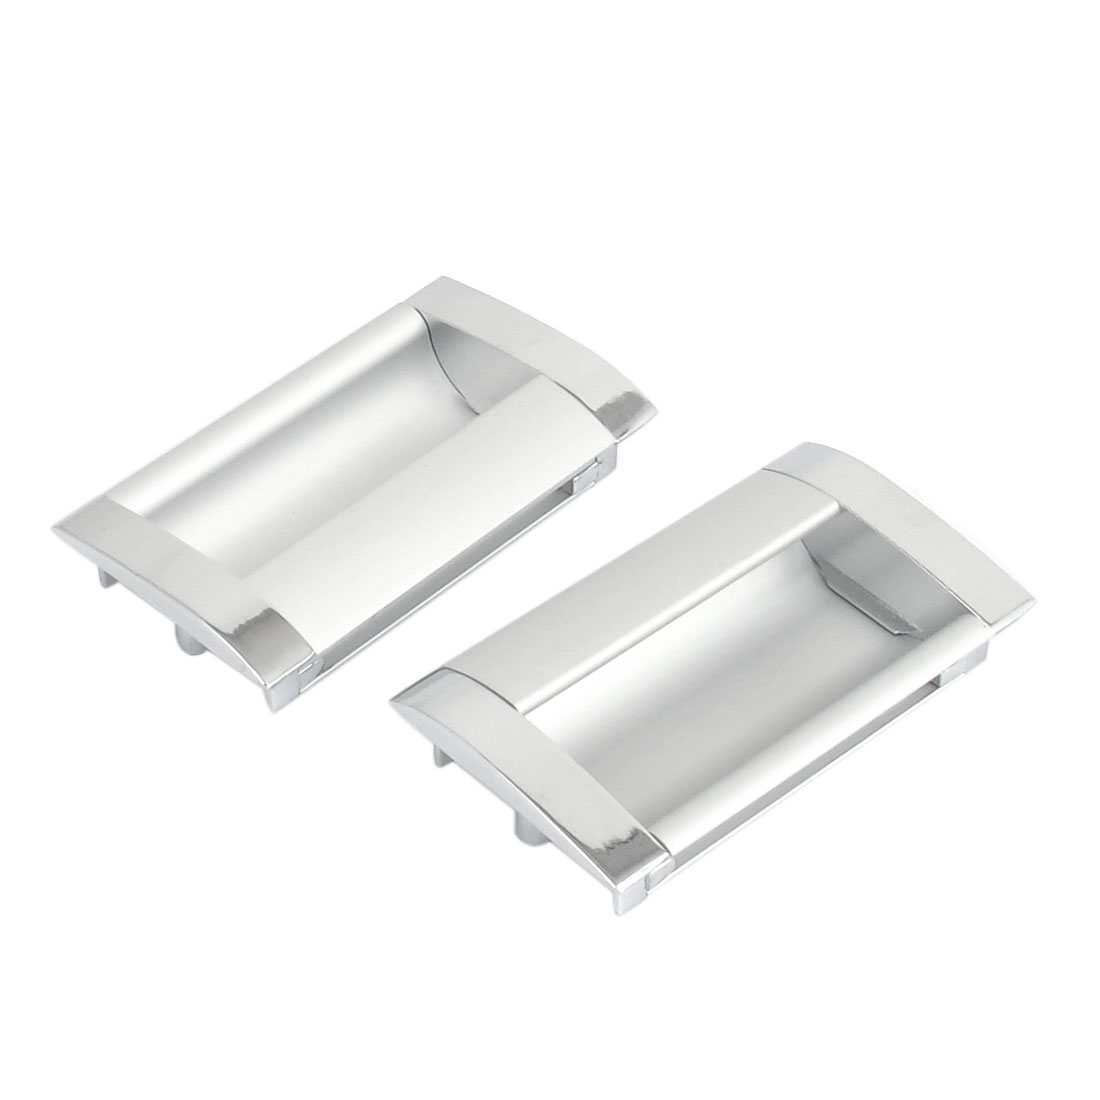 Aluminium Rectangle Drawer Door Flush Recessed Pull Handle Grip 2pcs